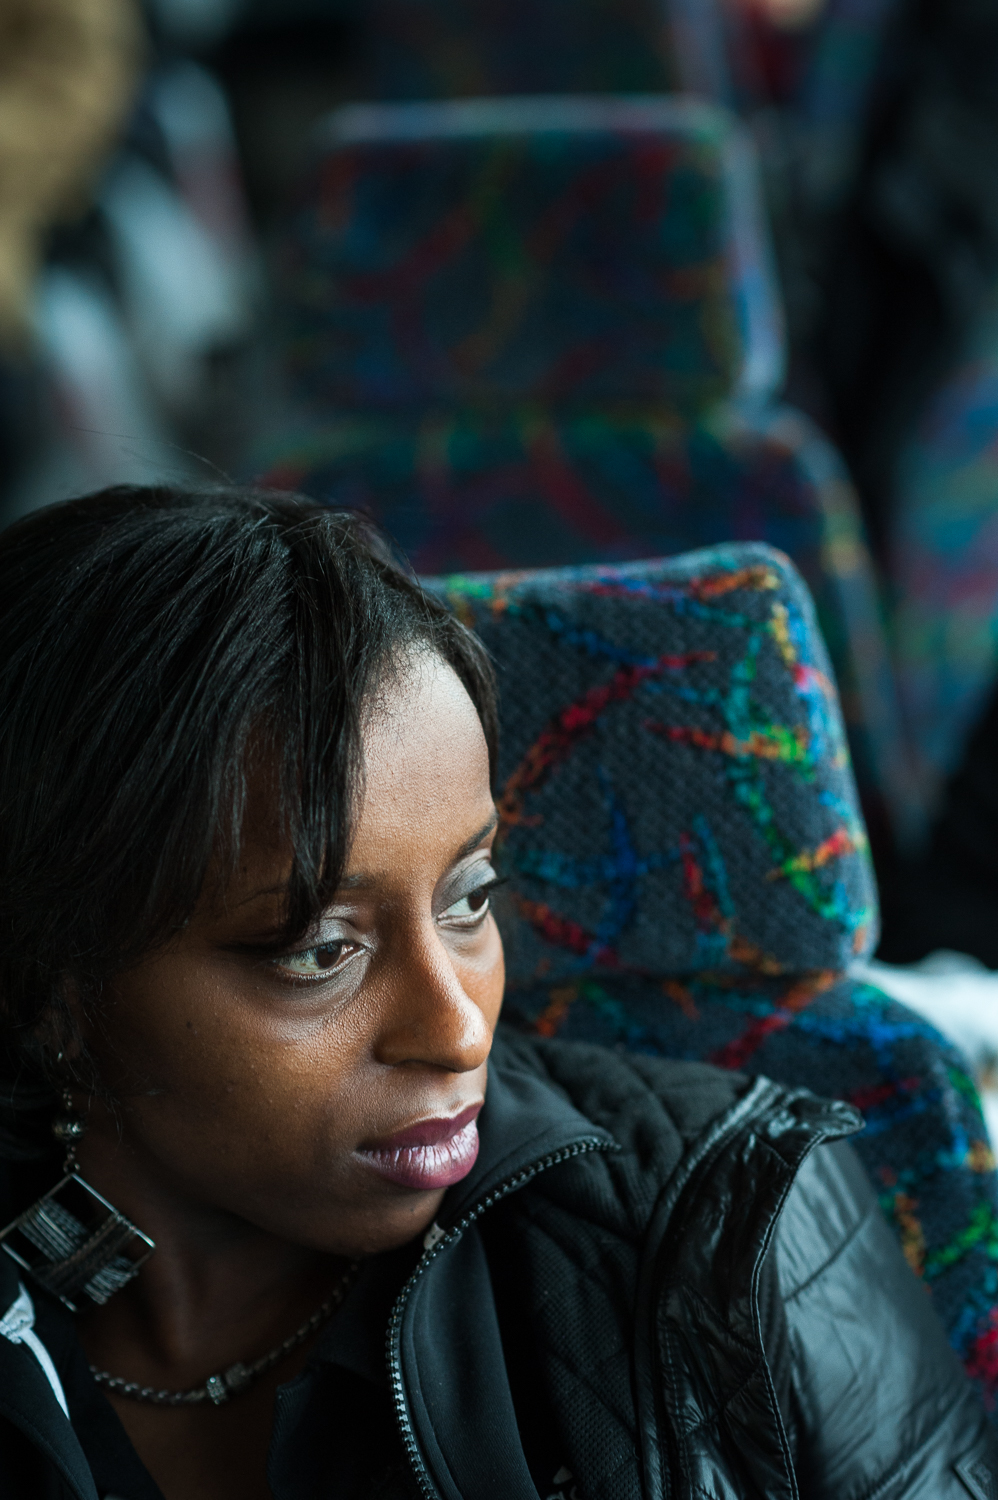 Monique, returning back to the city after visiting her boyfriend in a Correctional Facility upstate. The number of women who have incarcerated spouses is so high in the US that there are countless support groups for them that help deal with issues of isolation and shame. March 29, 2014.